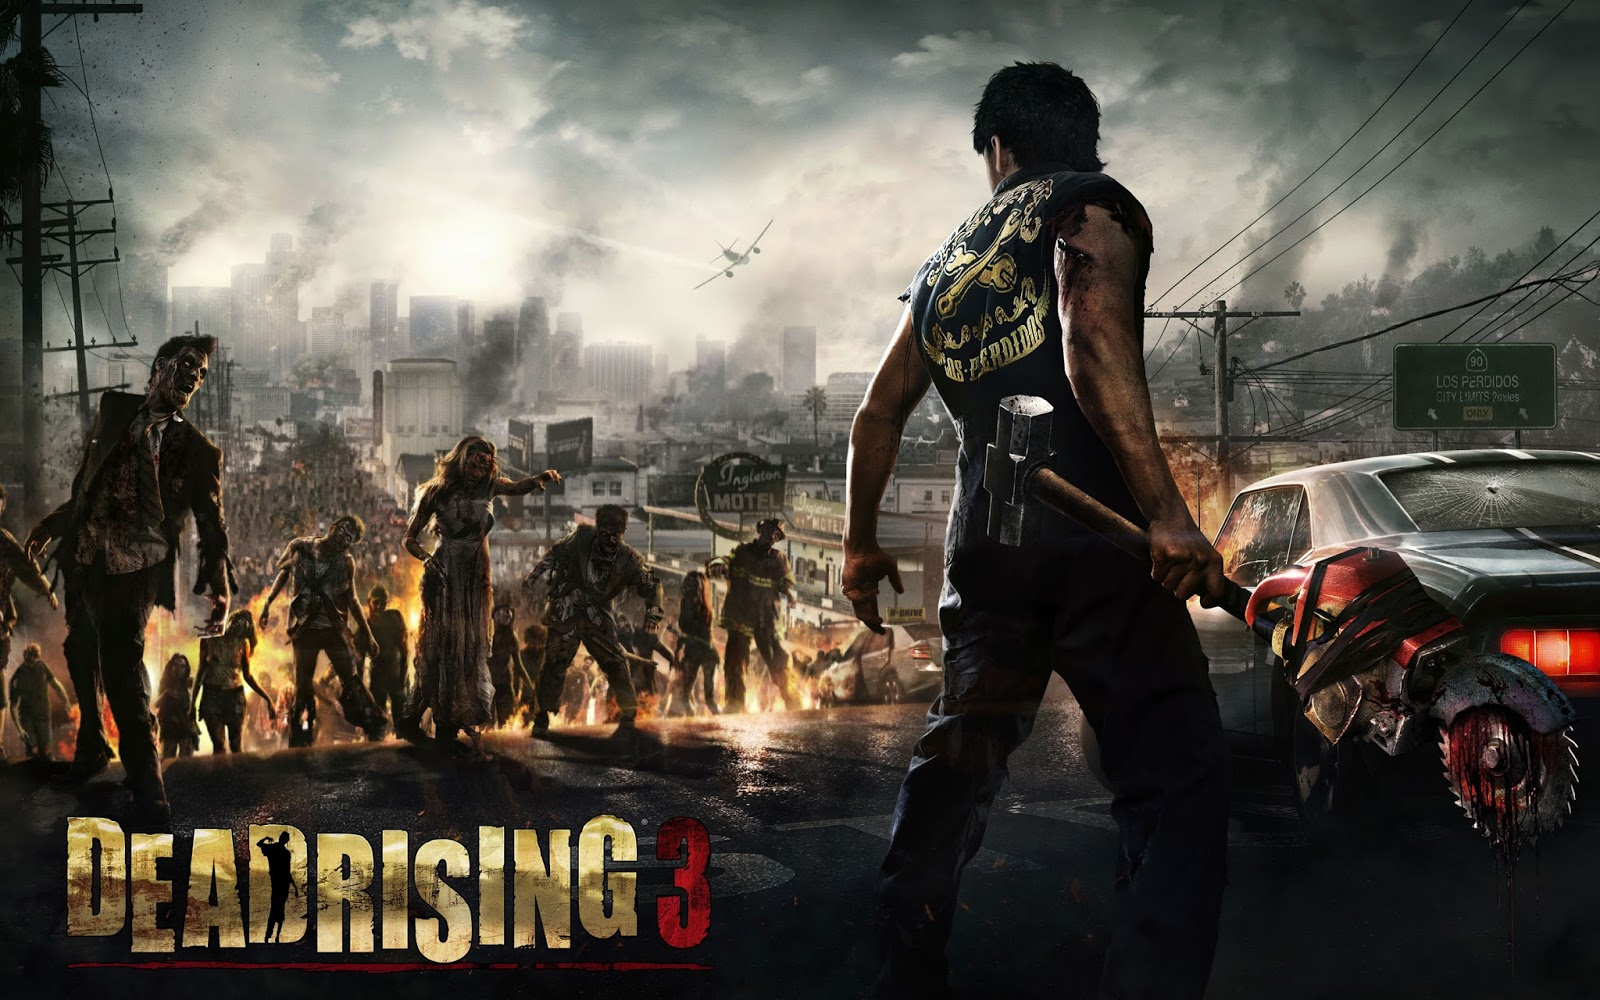 Dead Rrising 3 Wallpaper HD